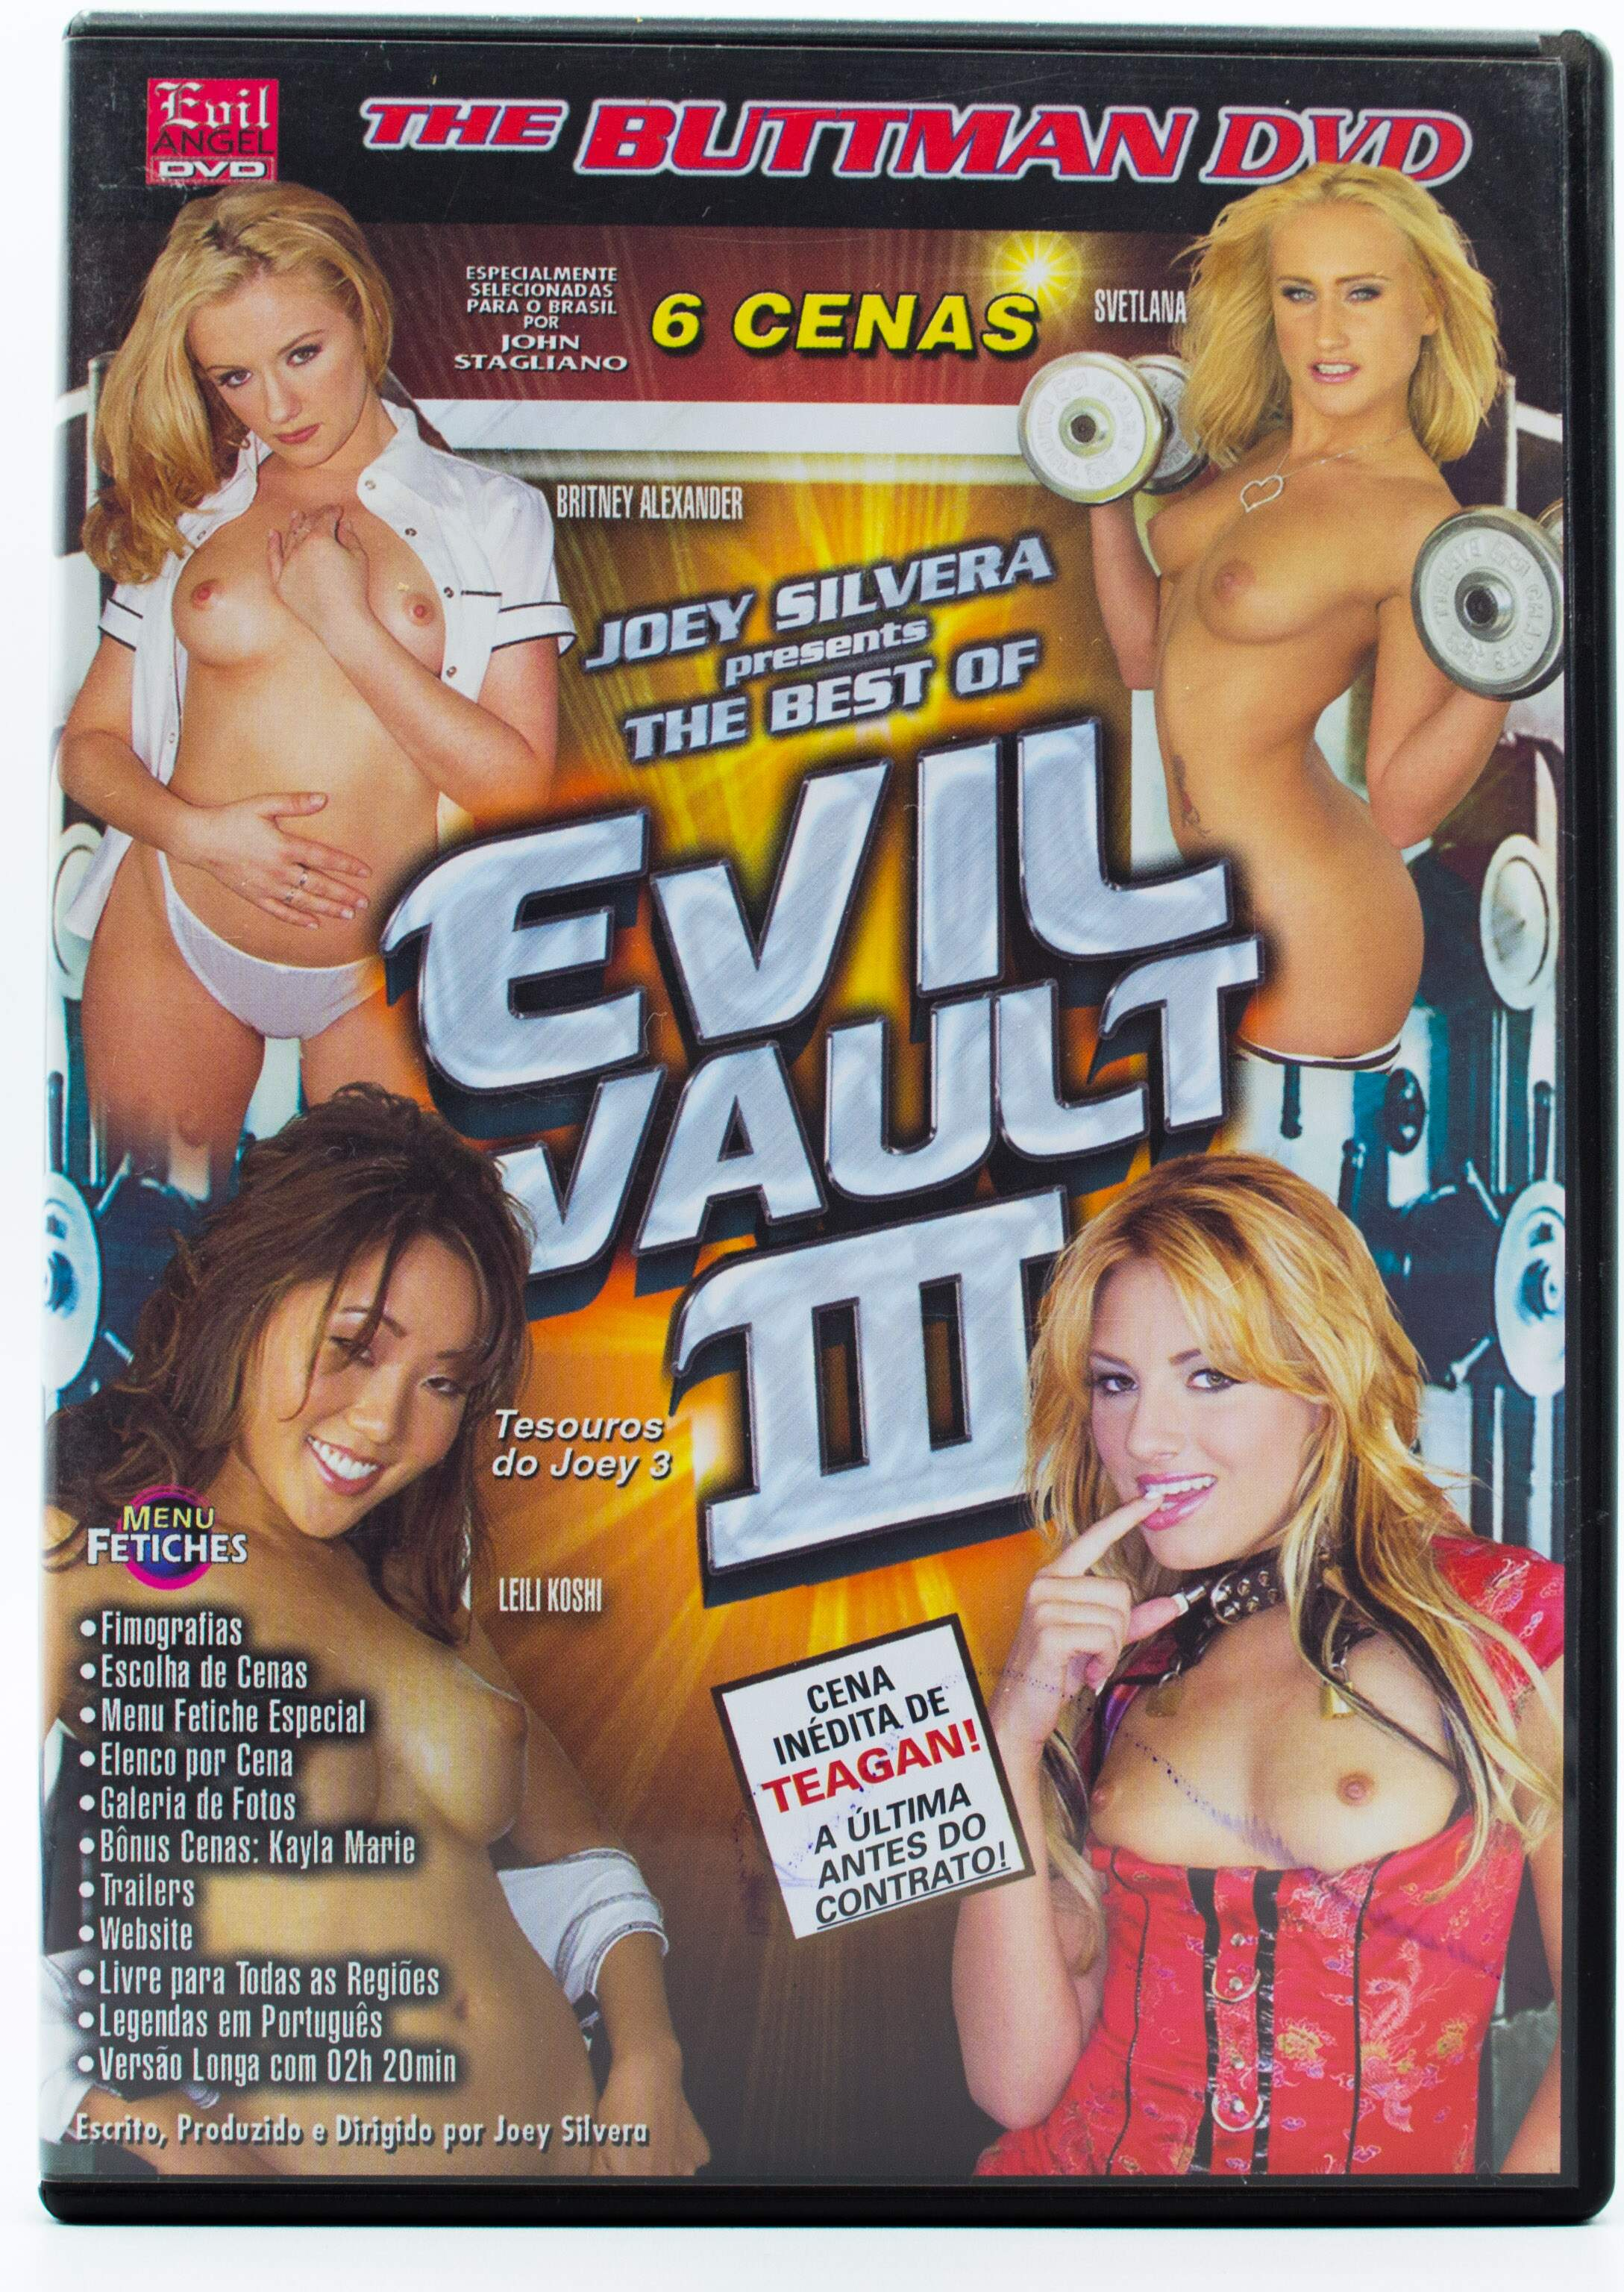 The Buttman DVD - The Best of Evil Vault III (Tesouros do Joey #3)